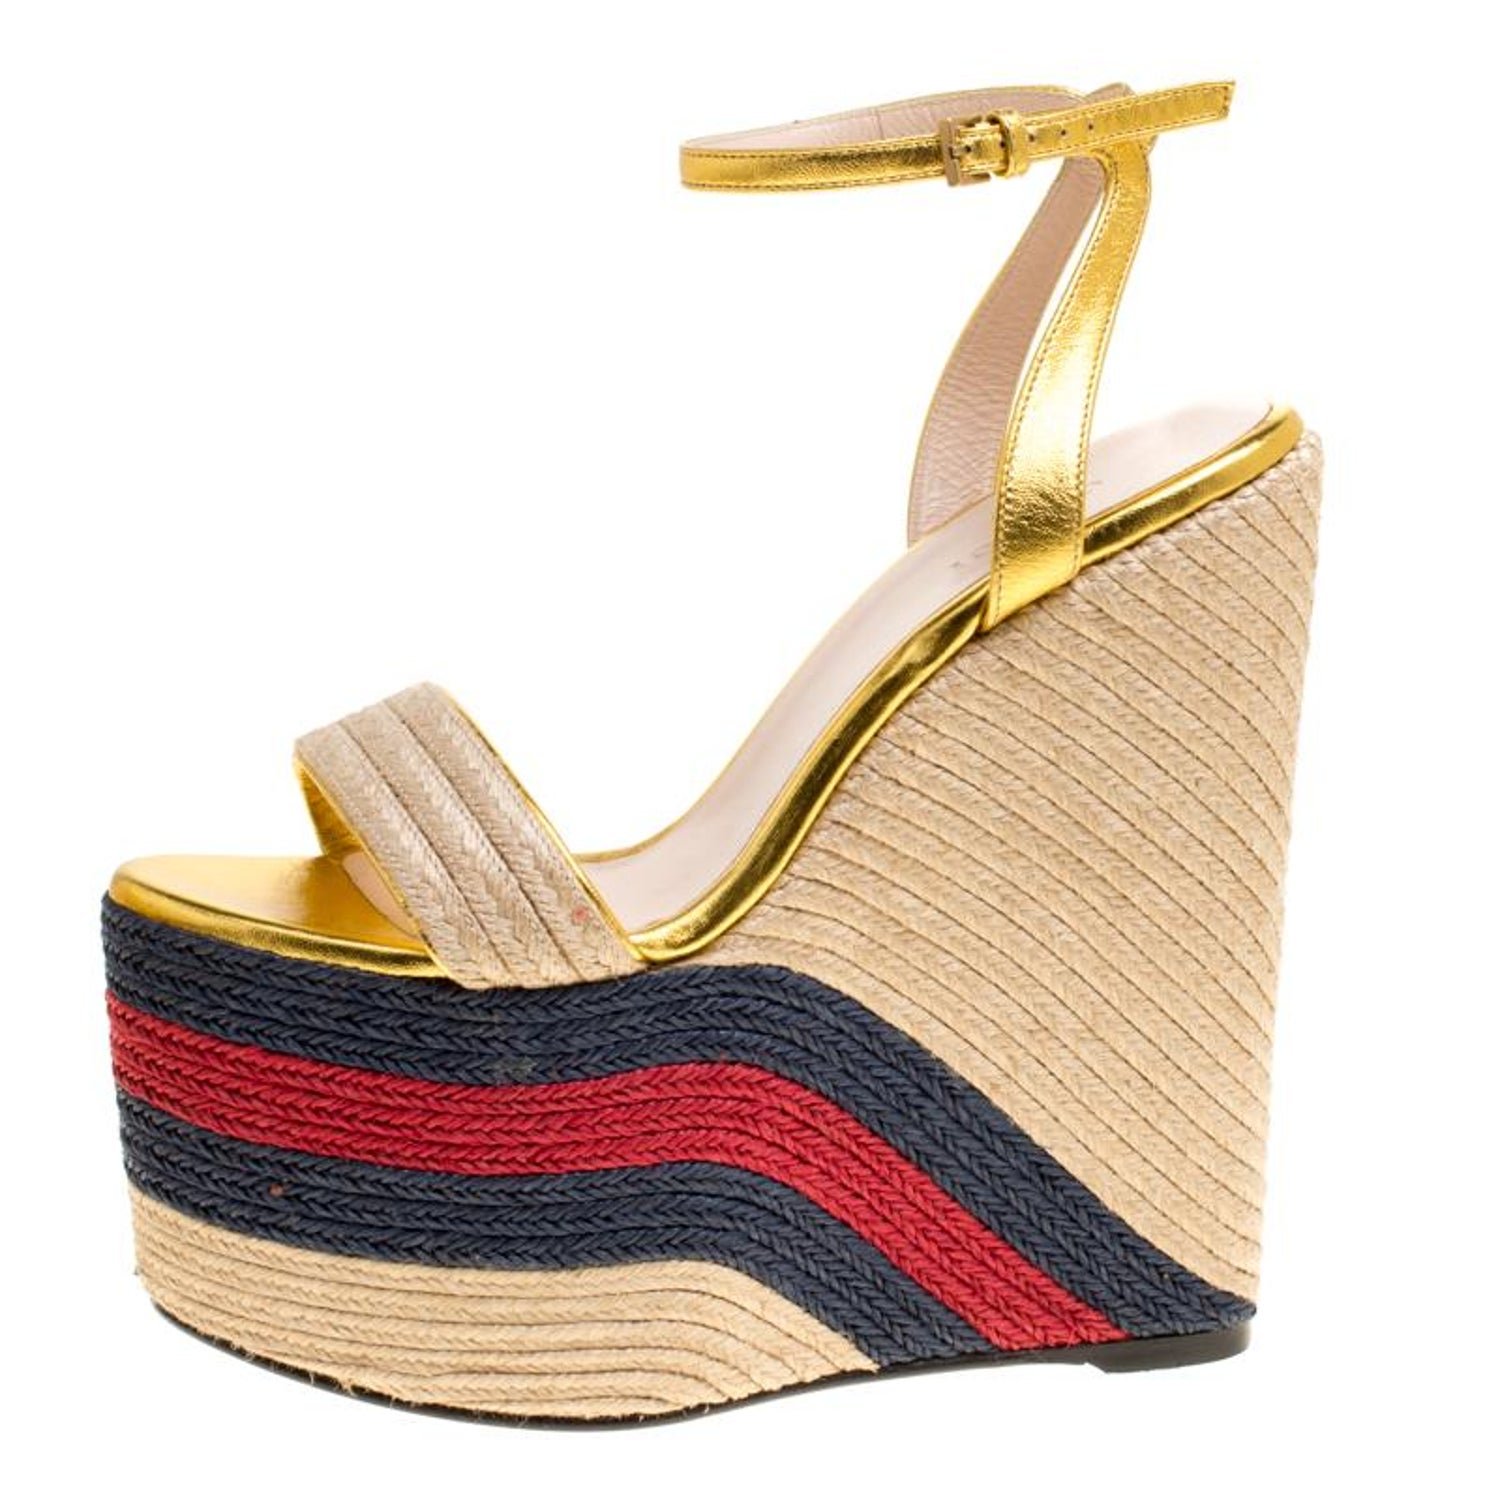 8864d760930e Gucci Metallic Leather Web Platform Ankle Strap Espadrille Wedge Sandals  Size 37 For Sale at 1stdibs